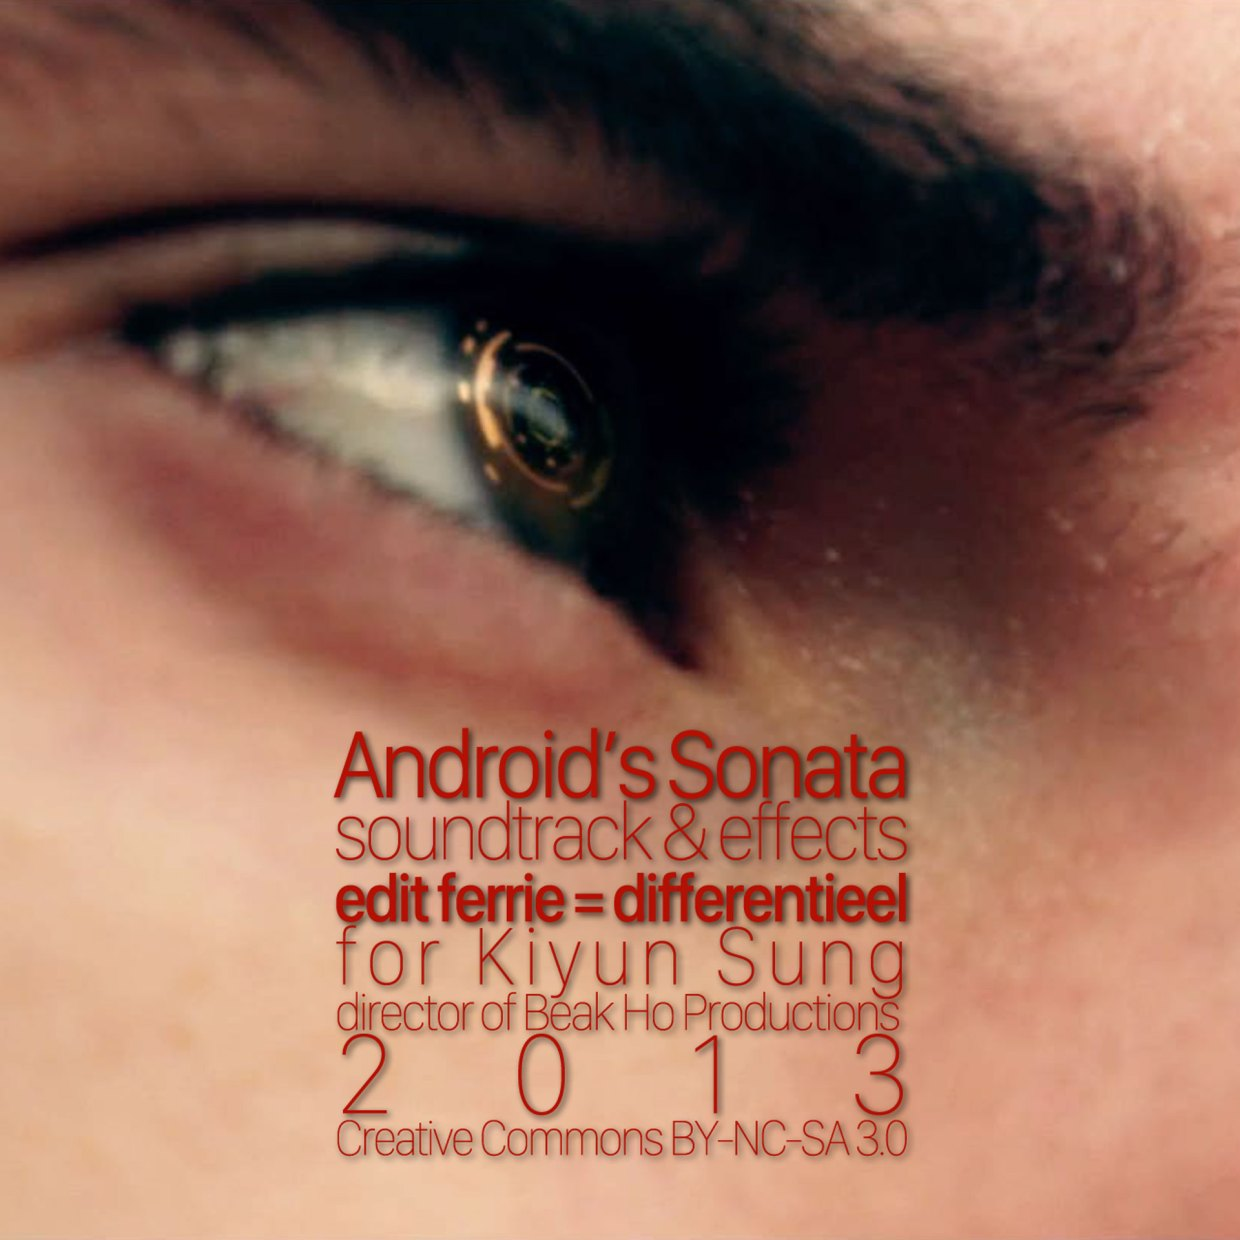 Android's Sonata cover